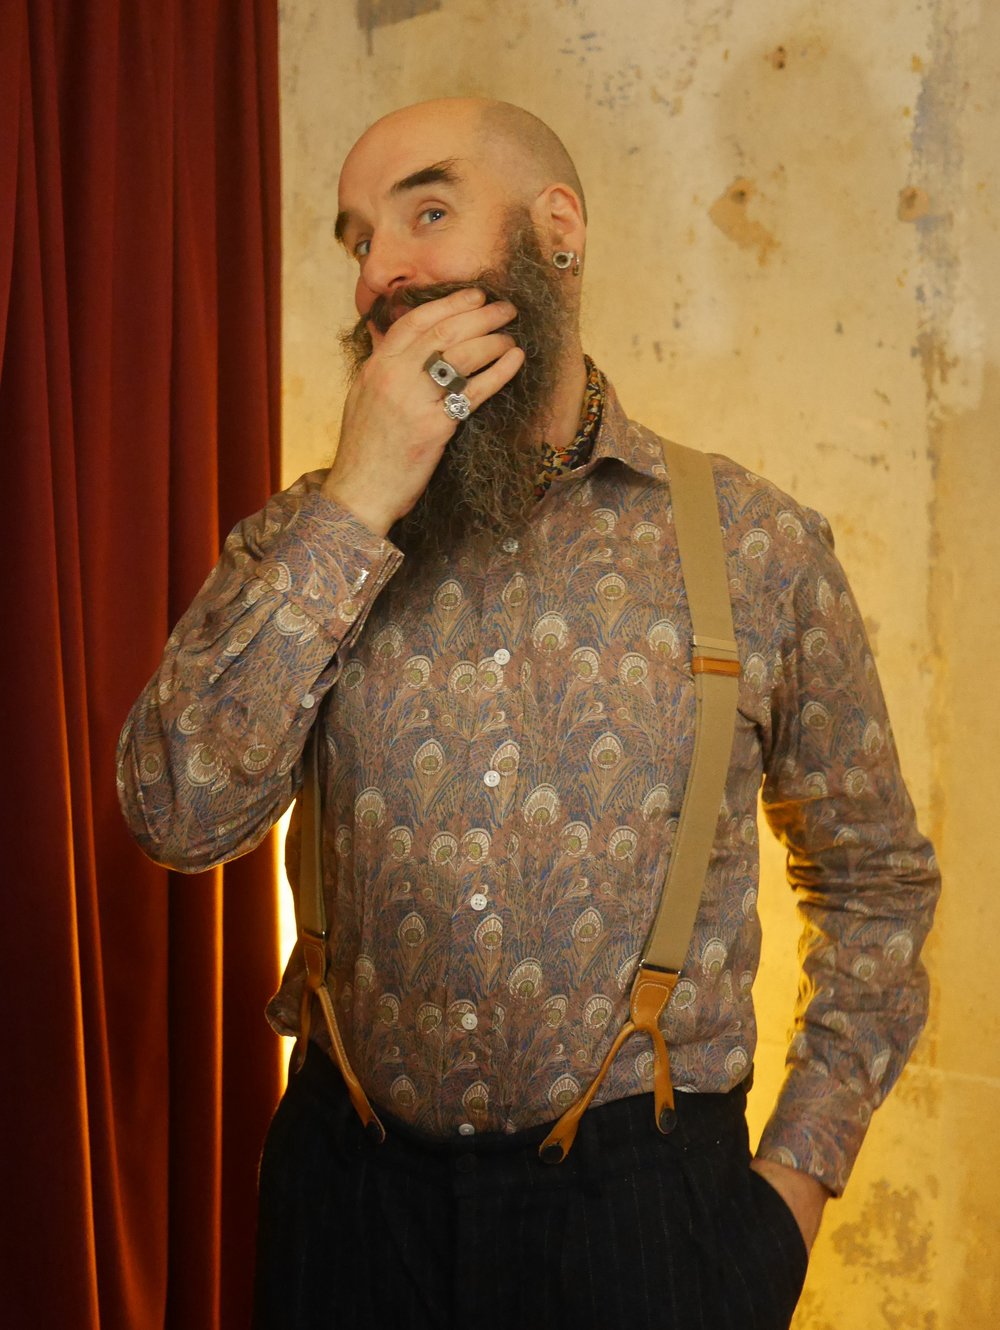 justified-sinner-bespoke-liberty-print-lawn-shirt-all-uk-made.JPG